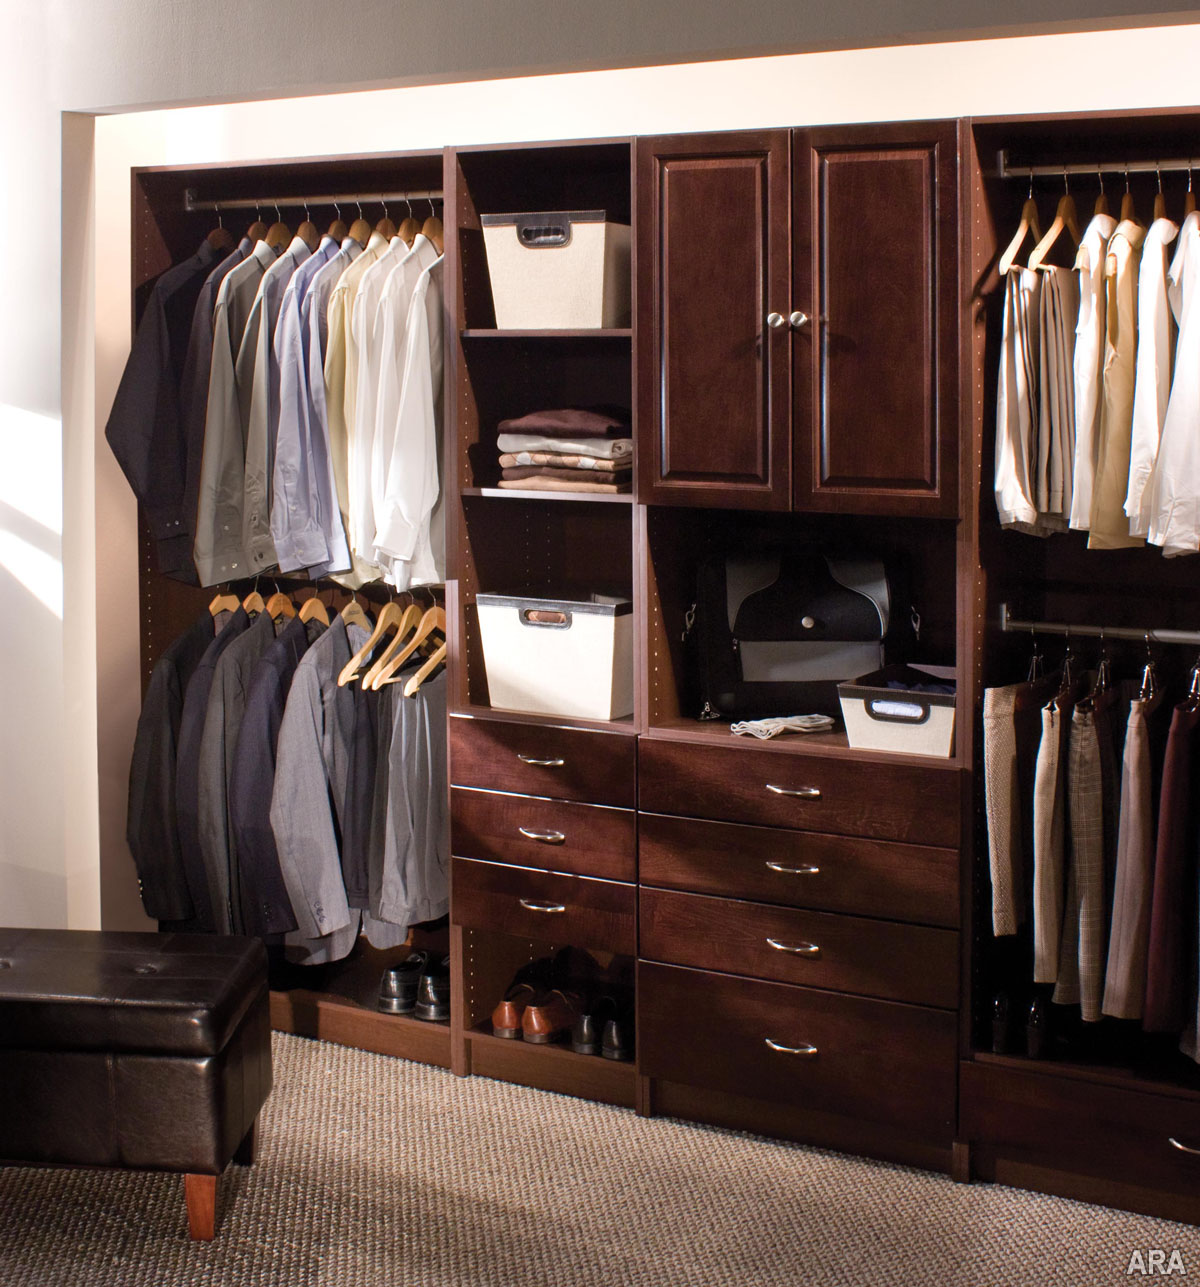 Masculine Custom Closets Nyc With Wardrobe Shoes Storage From Hard Wood Material Jute Rug And